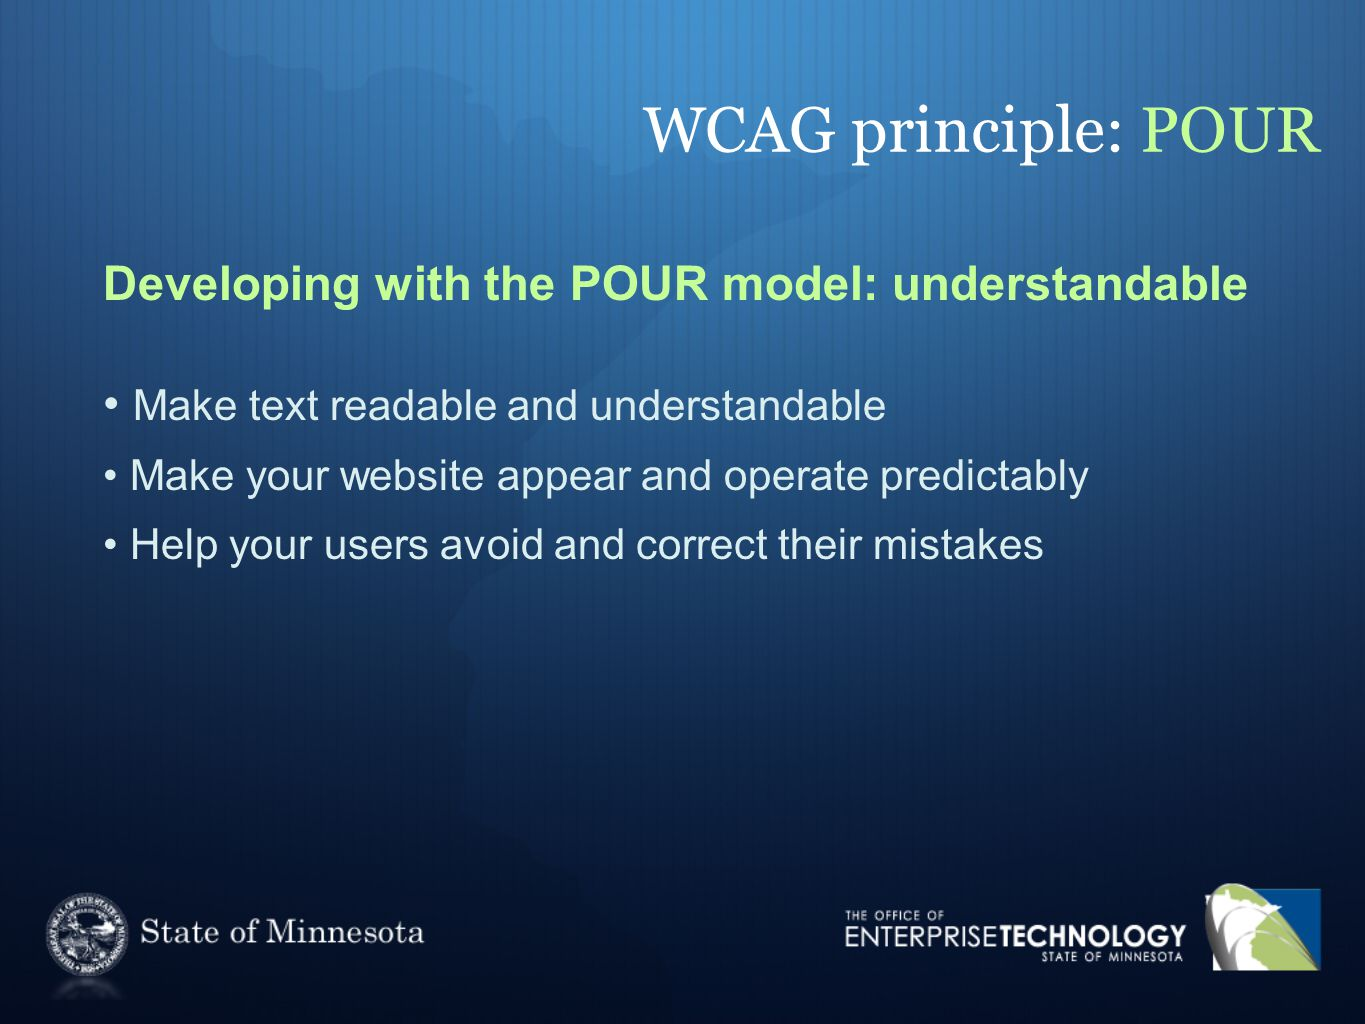 WCAG principle: POUR Developing with the POUR model: understandable Make text readable and understandable Make your website appear and operate predictably Help your users avoid and correct their mistakes